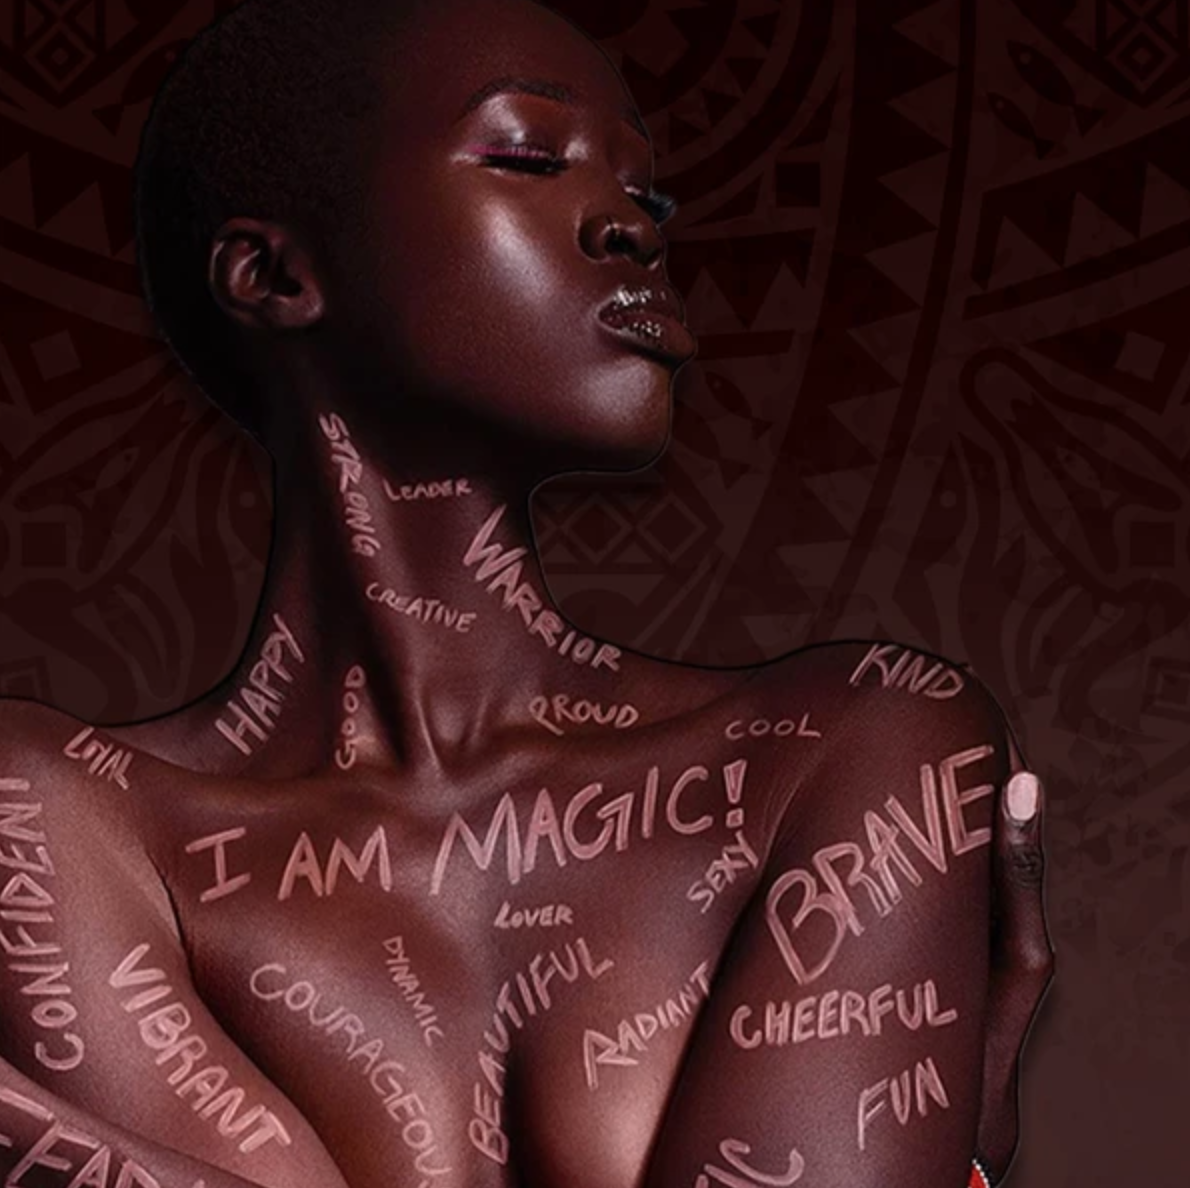 A model with inspiring slogans written on her skin poses in an advertisement for Juvia's Place.